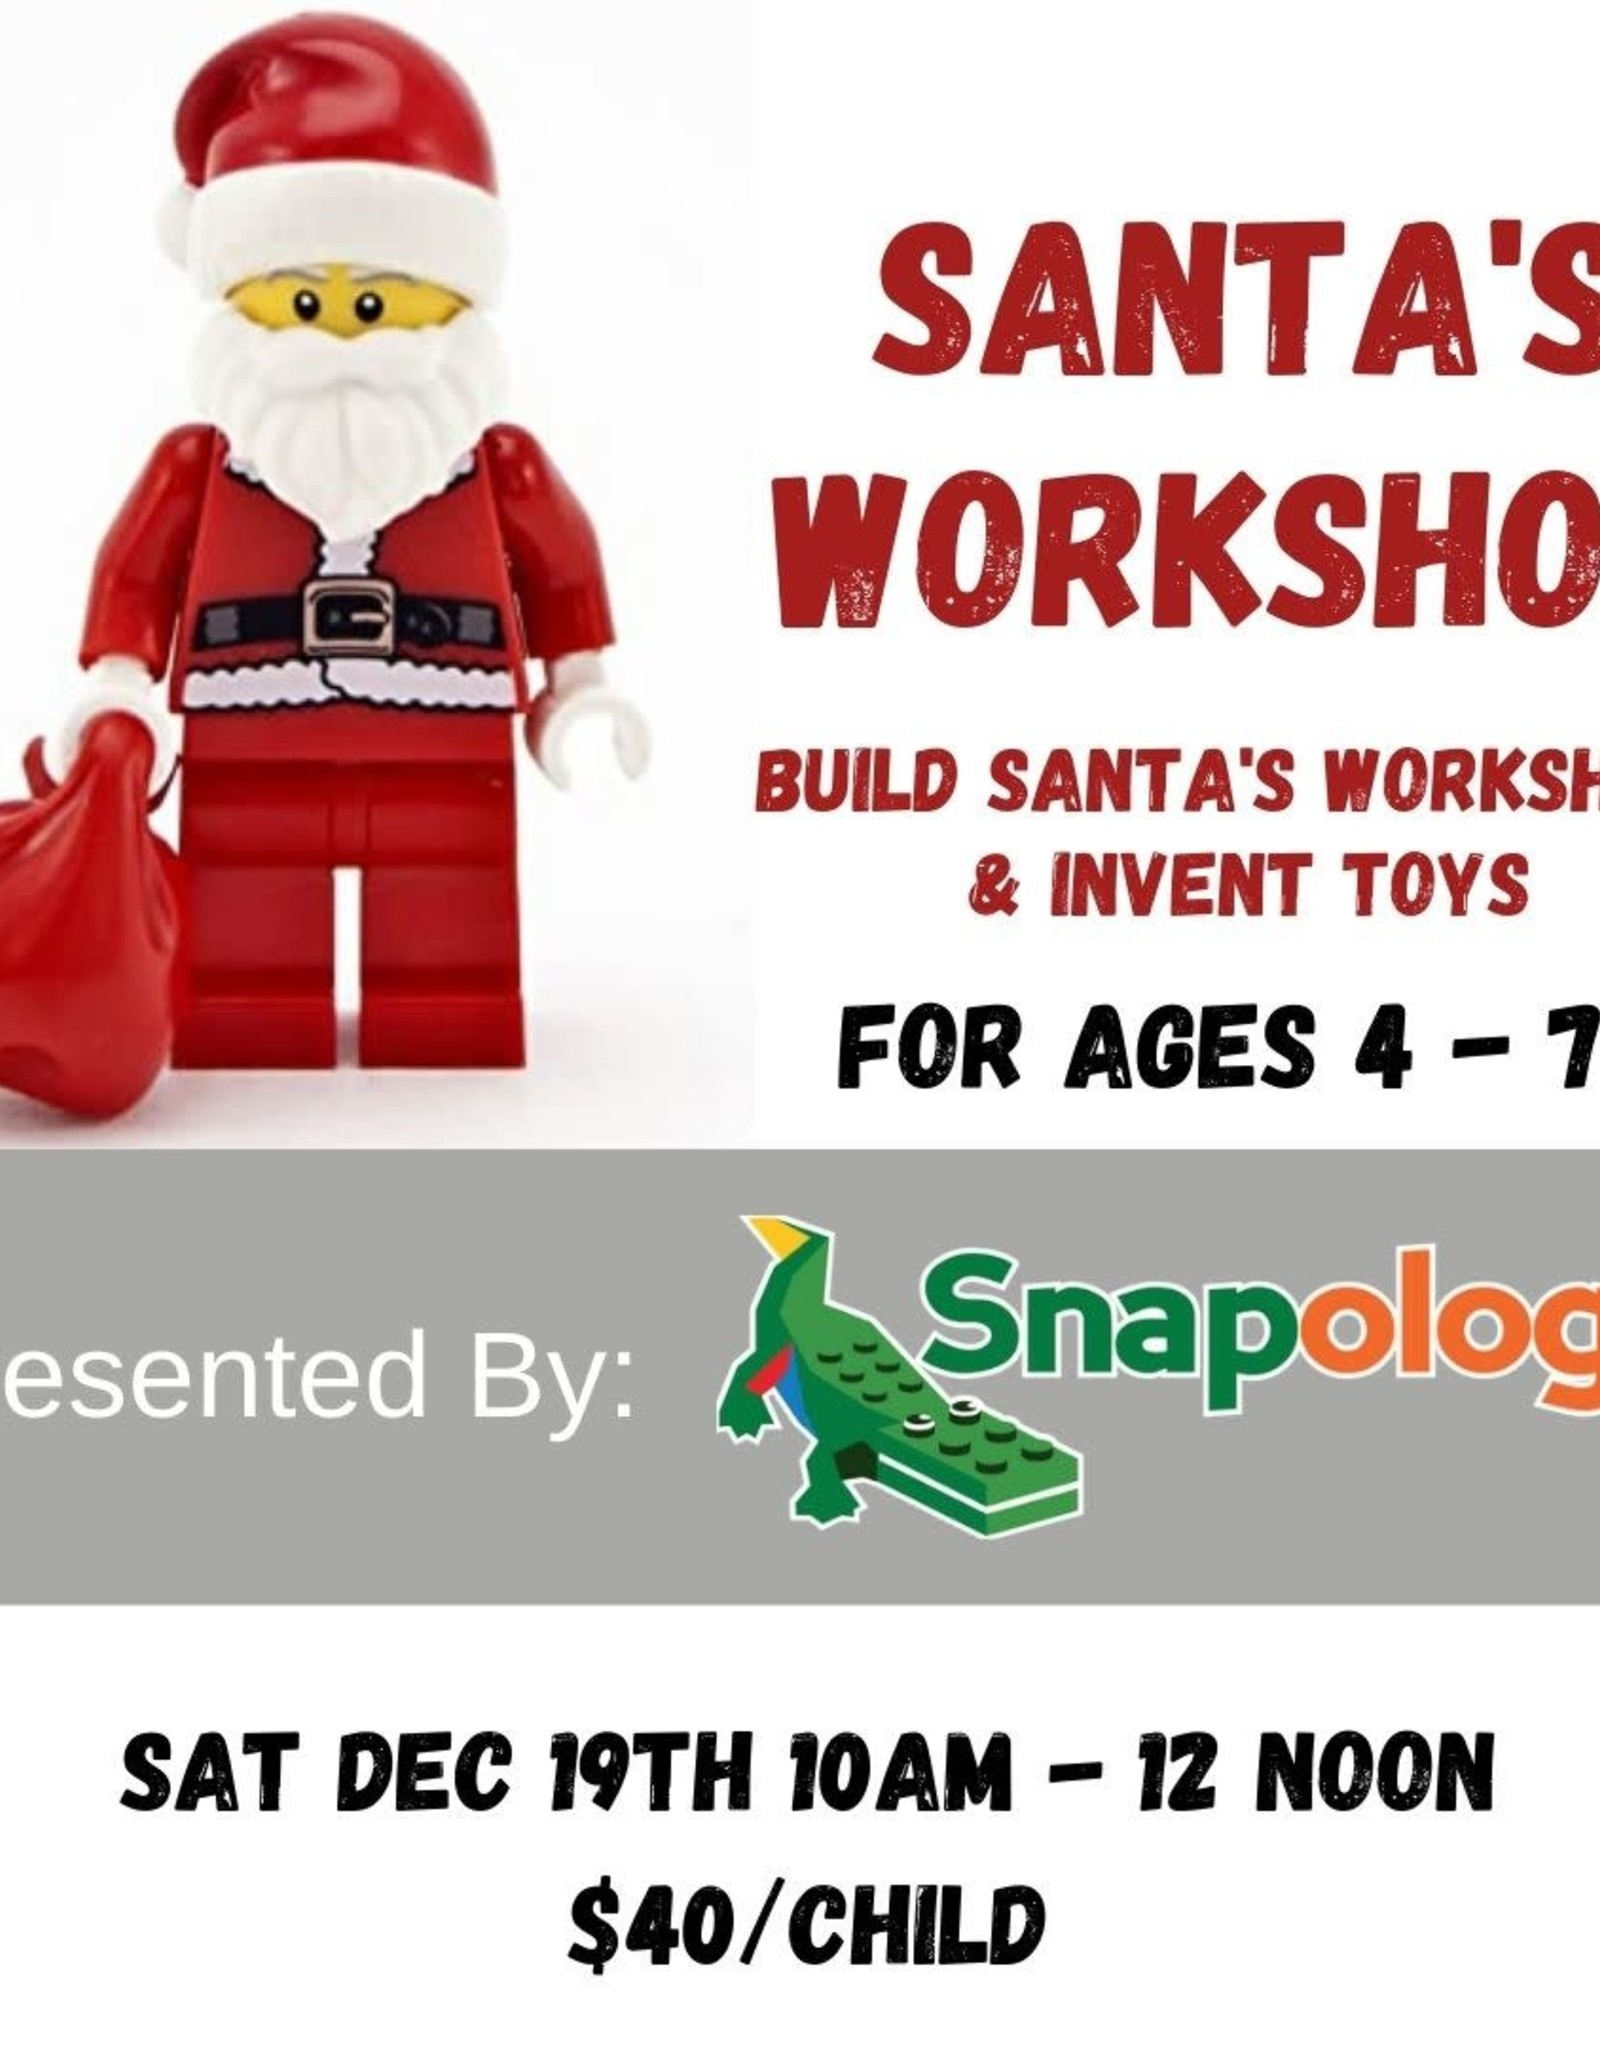 Santa's Workshop with Snapology - Dec 20